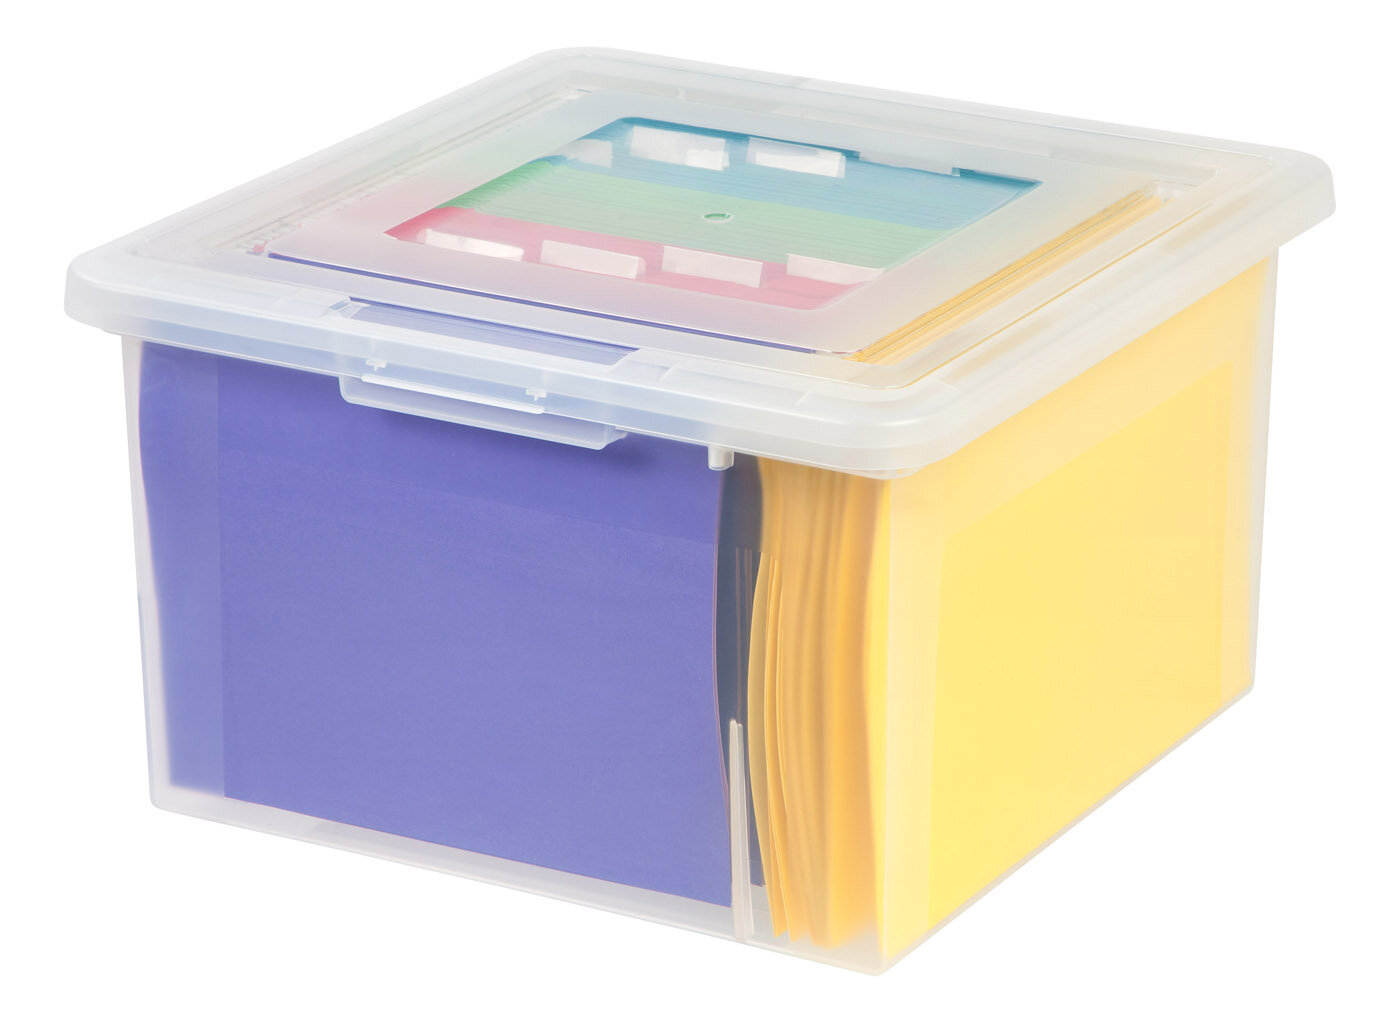 IRIS Store-It -All Letter and Legal Size File Box | Wayfair